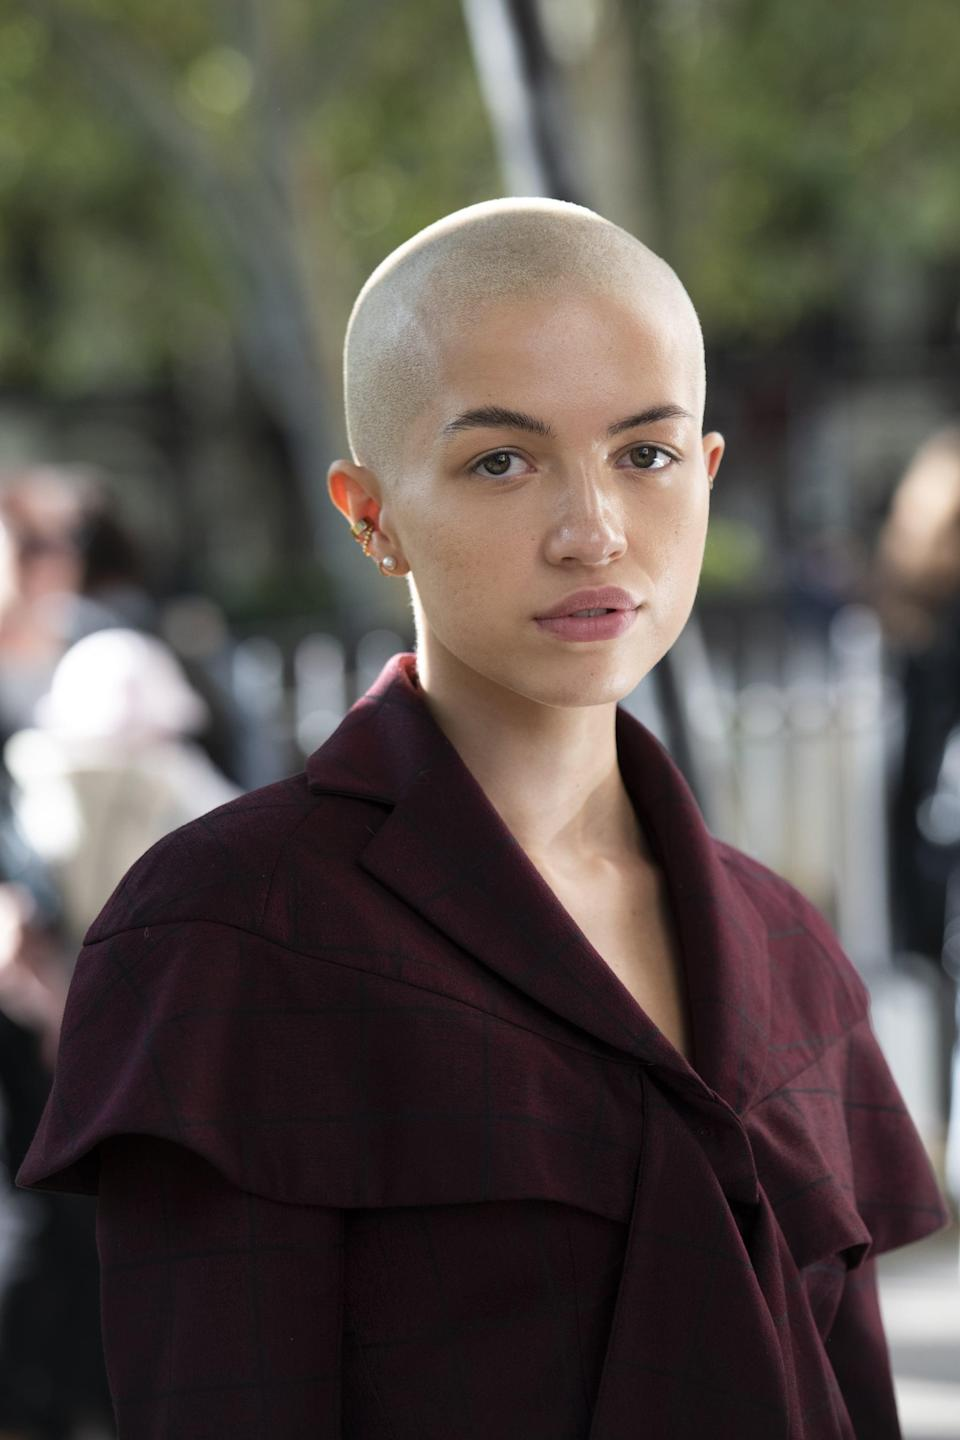 "<p>As so eloquently <a href=""https://www.popsugar.com/beauty/bruce-willis-gives-daughter-tallulah-buzzcut-47376297"" class=""link rapid-noclick-resp"" rel=""nofollow noopener"" target=""_blank"" data-ylk=""slk:demonstrated by Tallulah Willis"">demonstrated by Tallulah Willis</a> and <a href=""https://www.popsugar.com/beauty/antoni-porowski-buzzcut-hairstyle-47646738"" class=""link rapid-noclick-resp"" rel=""nofollow noopener"" target=""_blank"" data-ylk=""slk:Antoni Porowski"">Antoni Porowski</a>: <a href=""https://www.popsugar.com/beauty/Women-Buzz-Cut-Hairstyles-44242074"" class=""link rapid-noclick-resp"" rel=""nofollow noopener"" target=""_blank"" data-ylk=""slk:buzz cuts"">buzz cuts</a> can be damn <em>cool</em> (and are very on-trend right now, according to <a href=""https://www.instagram.com/larryjarahsims/?hl=en"" class=""link rapid-noclick-resp"" rel=""nofollow noopener"" target=""_blank"" data-ylk=""slk:Larry Sims"">Larry Sims</a>, celebrity hairstylist and co-founder of Flawless by <a class=""link rapid-noclick-resp"" href=""https://www.popsugar.com/Gabrielle-Union"" rel=""nofollow noopener"" target=""_blank"" data-ylk=""slk:Gabrielle Union"">Gabrielle Union</a>). This is characterized by hair that's been completely buzzed off, or left with at least an inch of hair from the scalp.</p>"